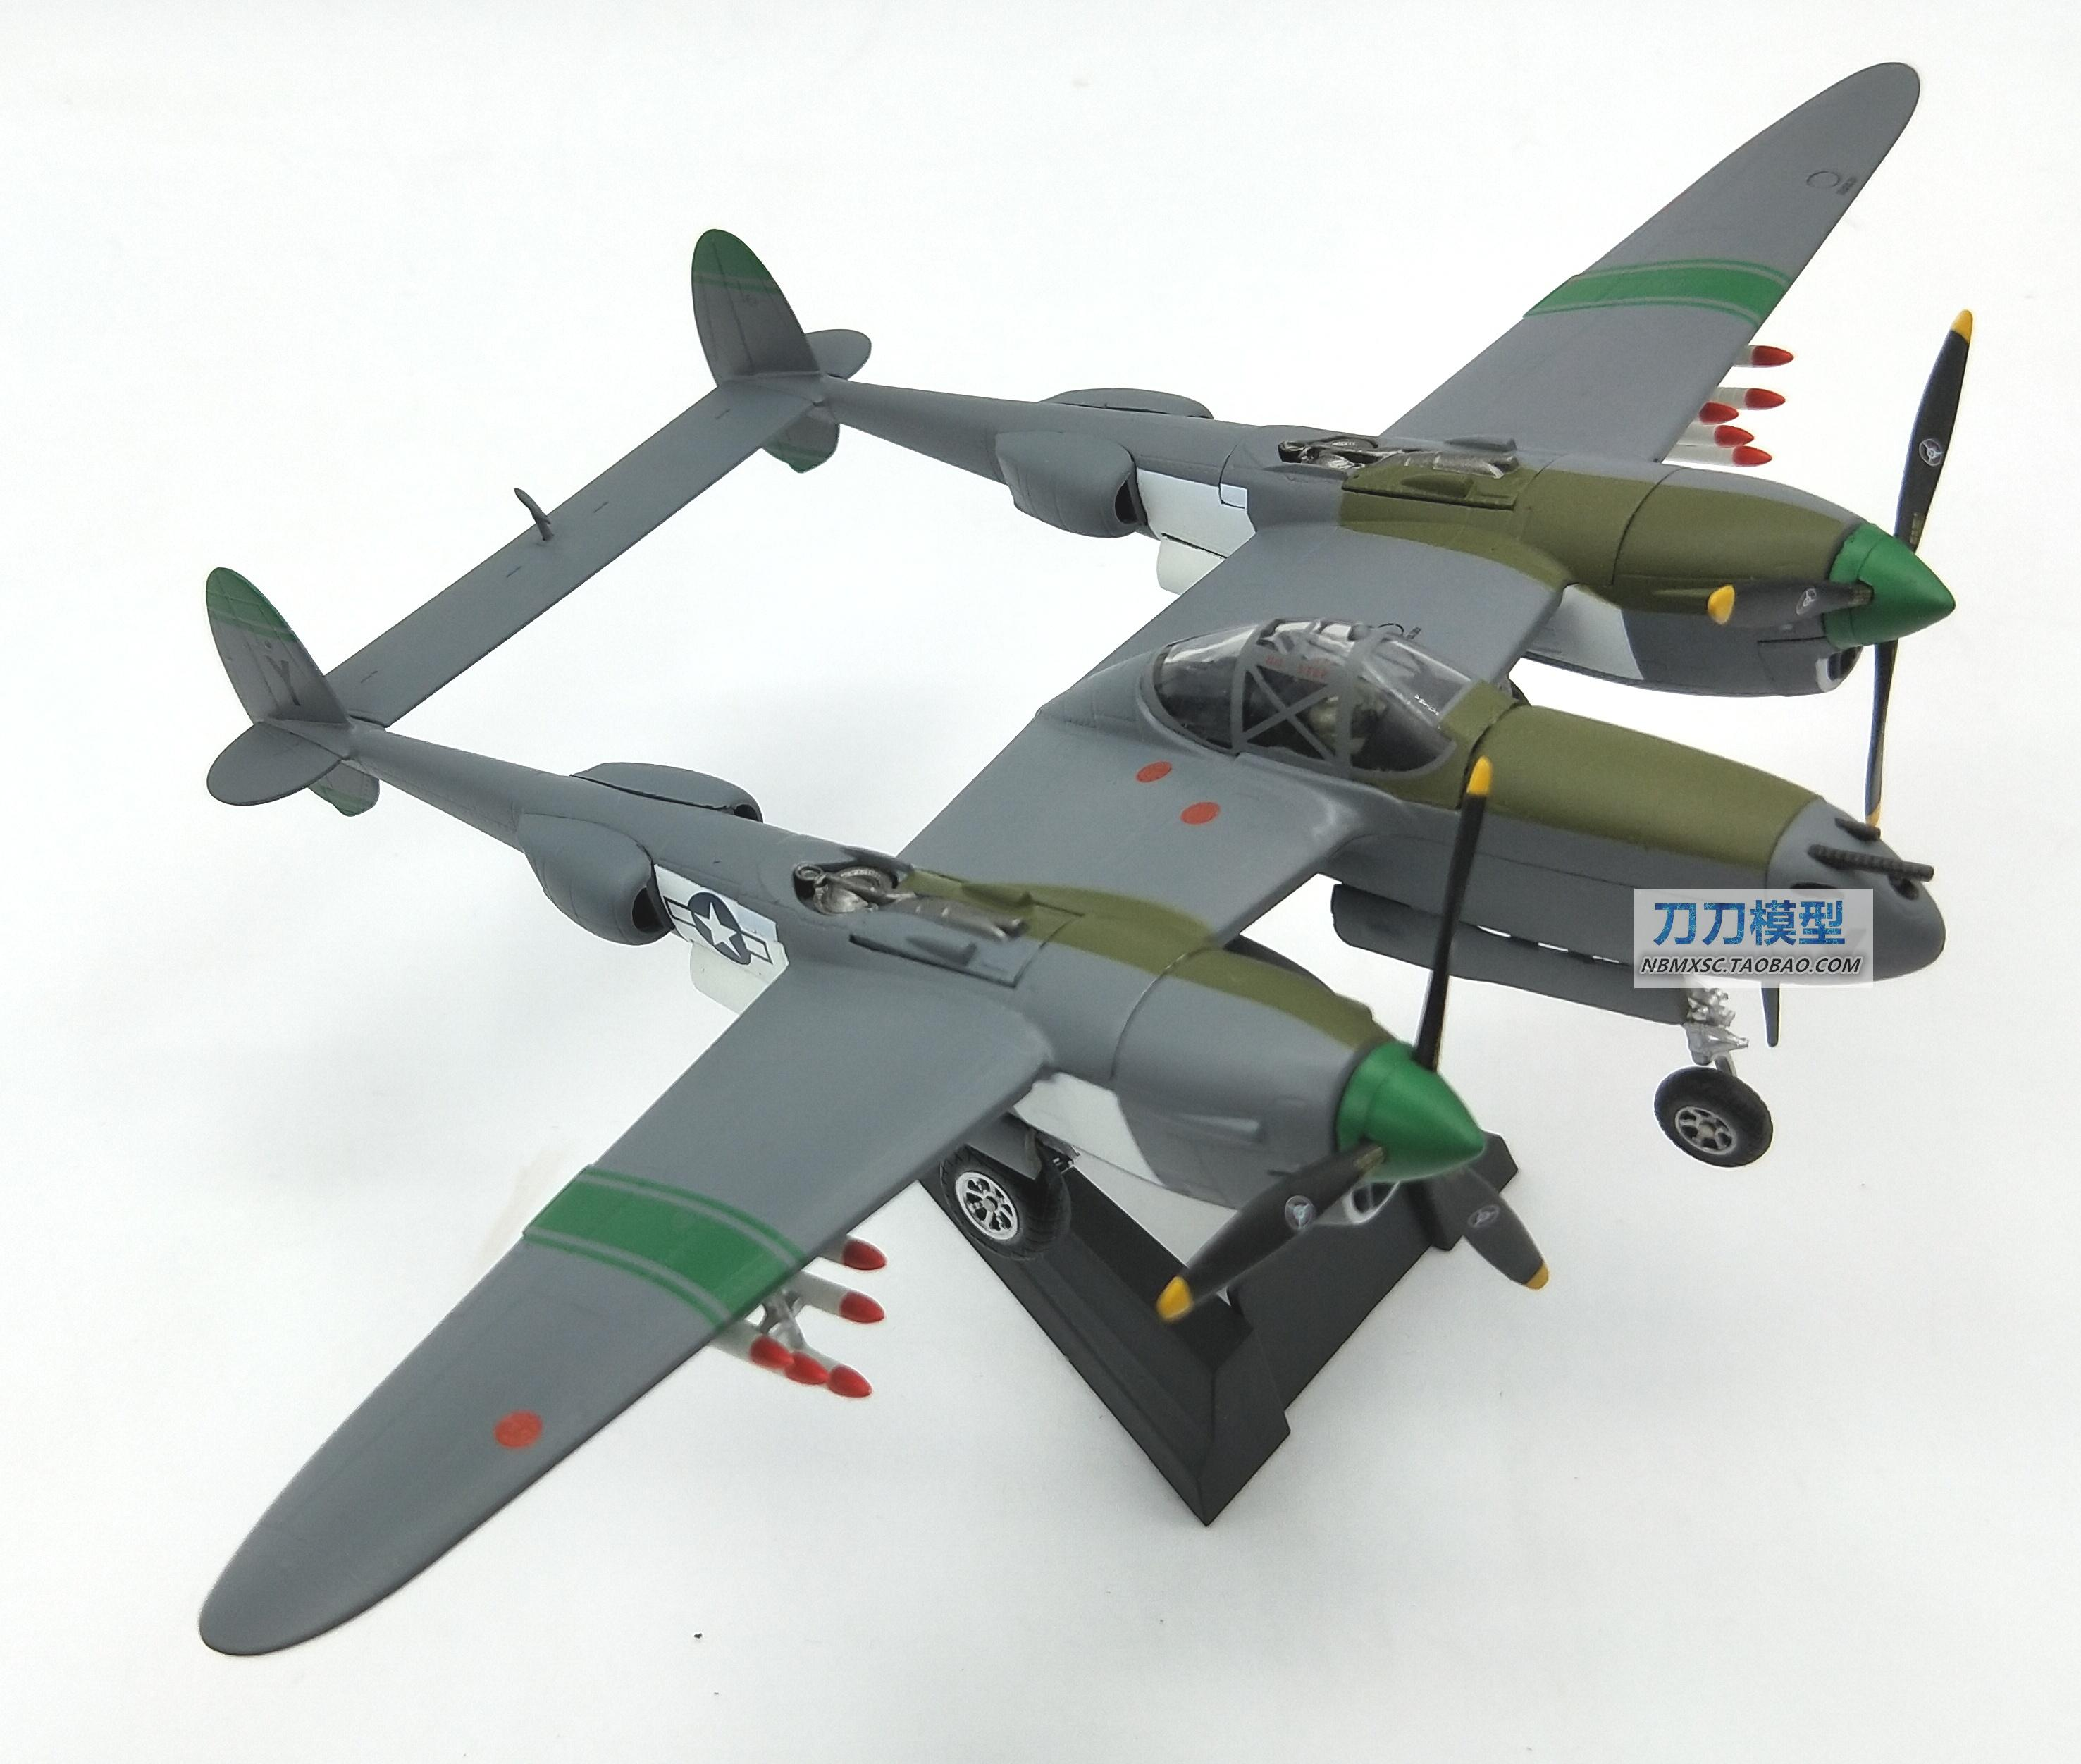 RIAN DAY 1/72 Scale Military Model Toys Word War II P38 P-38 Lighting Fighter Diecast Metal Plane Model Toy For Collection/Gift brand new terebo 1 72 scale fighter model toys russia su 34 su34 flanker combat aircraft kids diecast metal plane model toy